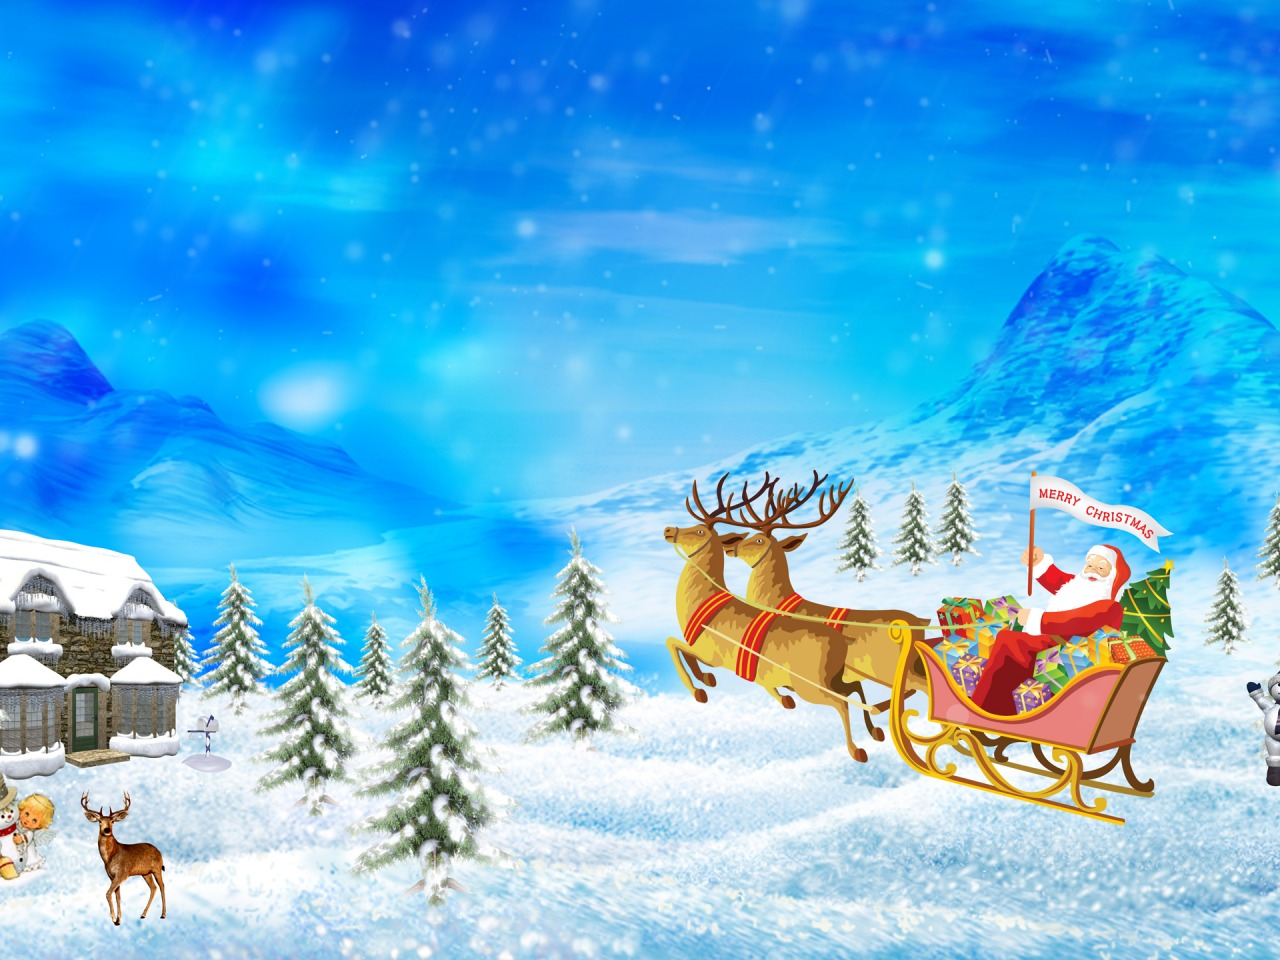 Drawn reindeer merry christmas Christmas Wallpapers Wallpapers drawing Holidays